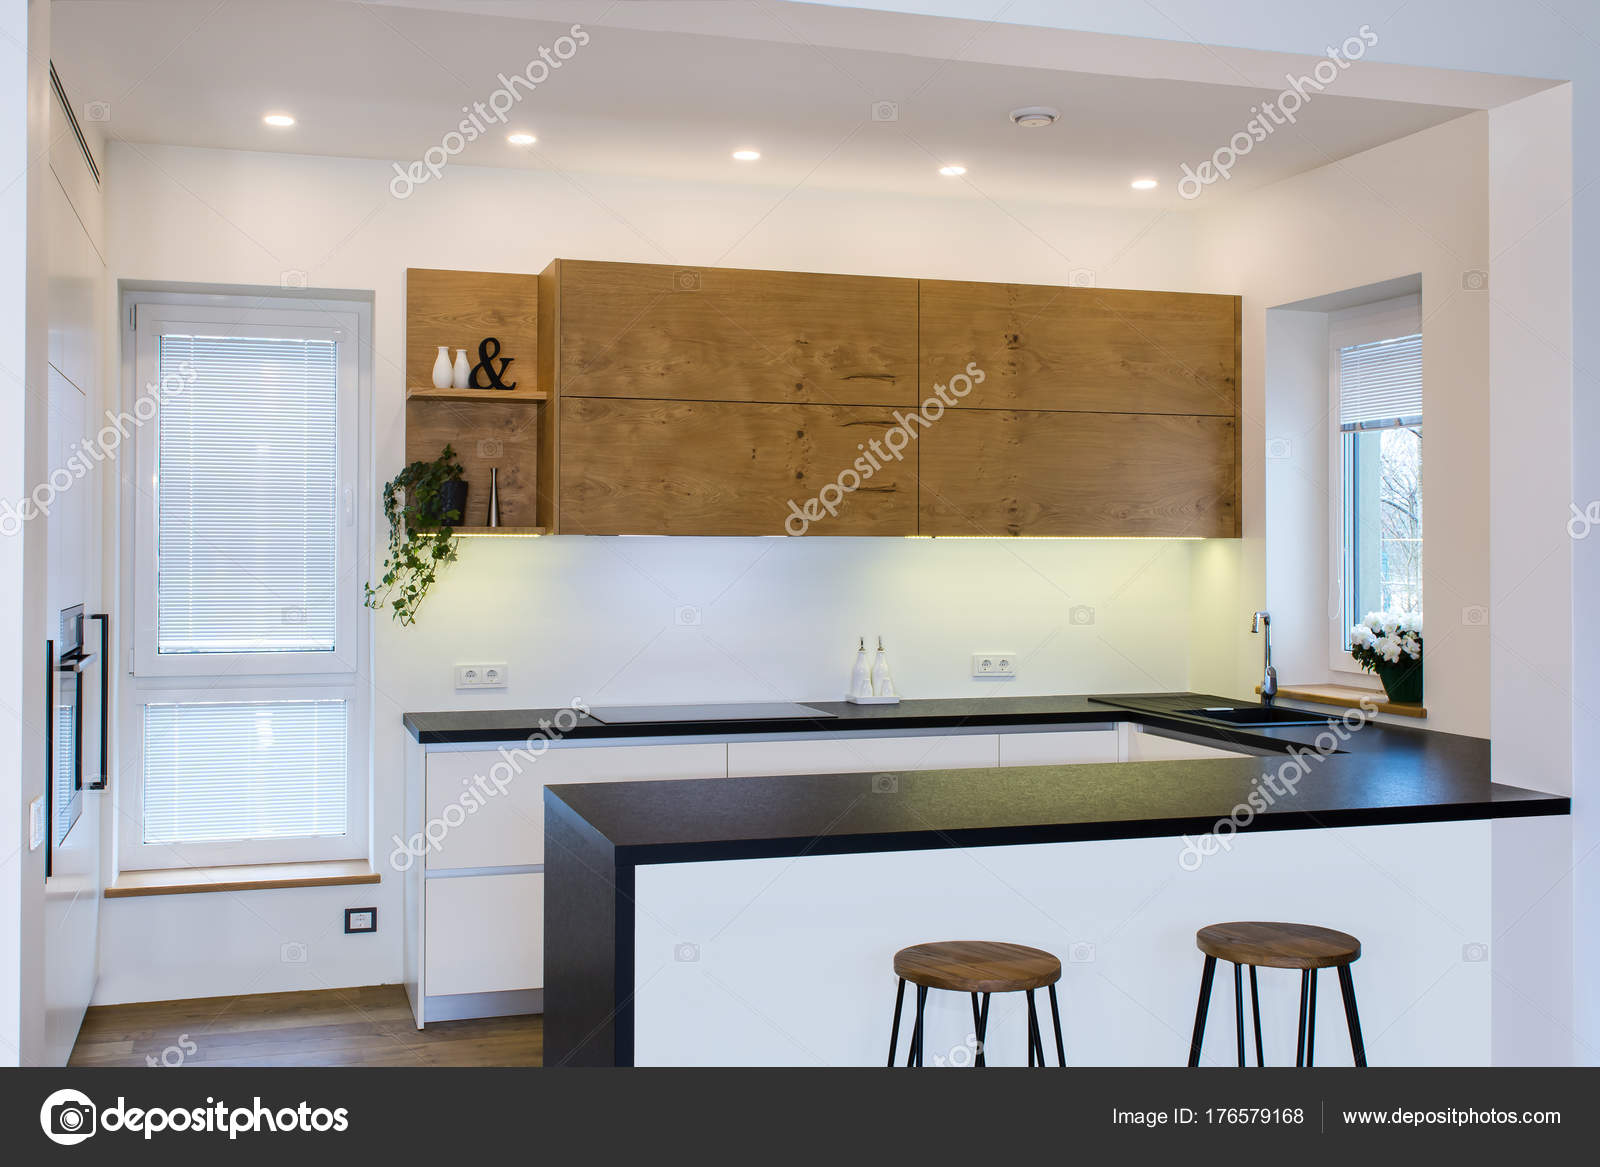 There is also a kitchen peninsula in the room kitchen and living room combined kitchen wood facades are made from walnut veneer